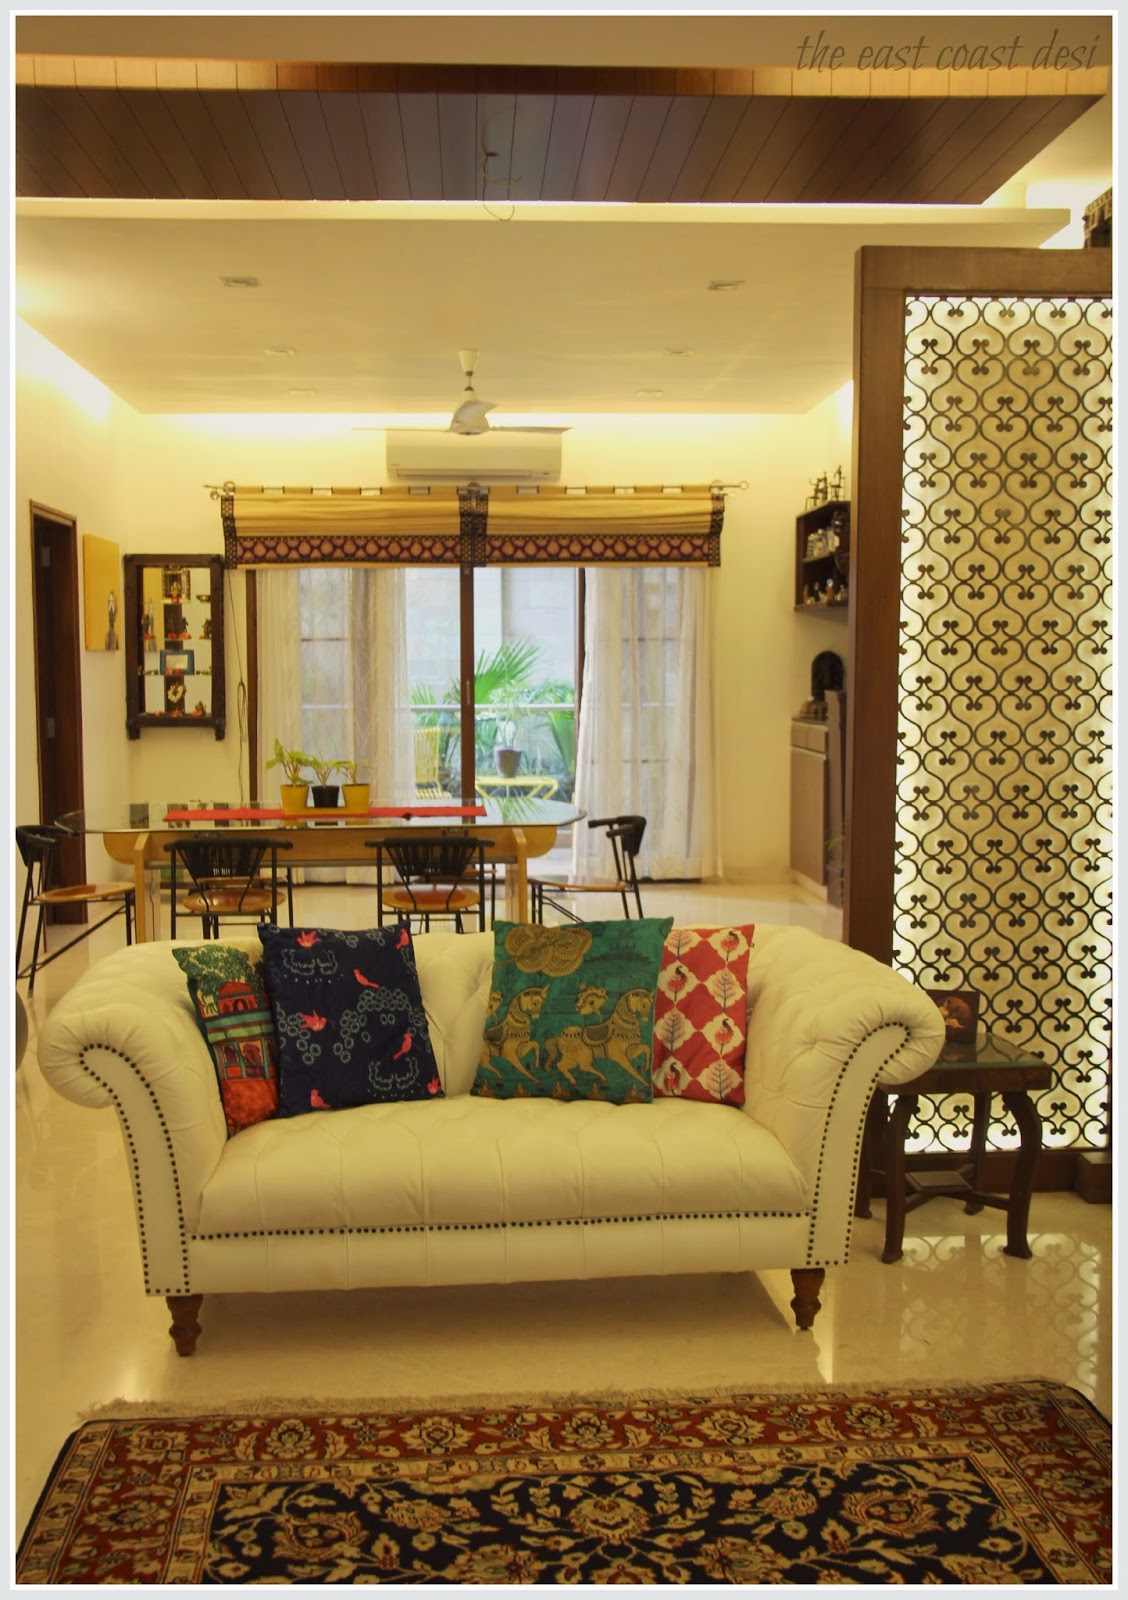 The east coast desi masterful mixing home tour for Living room ideas indian